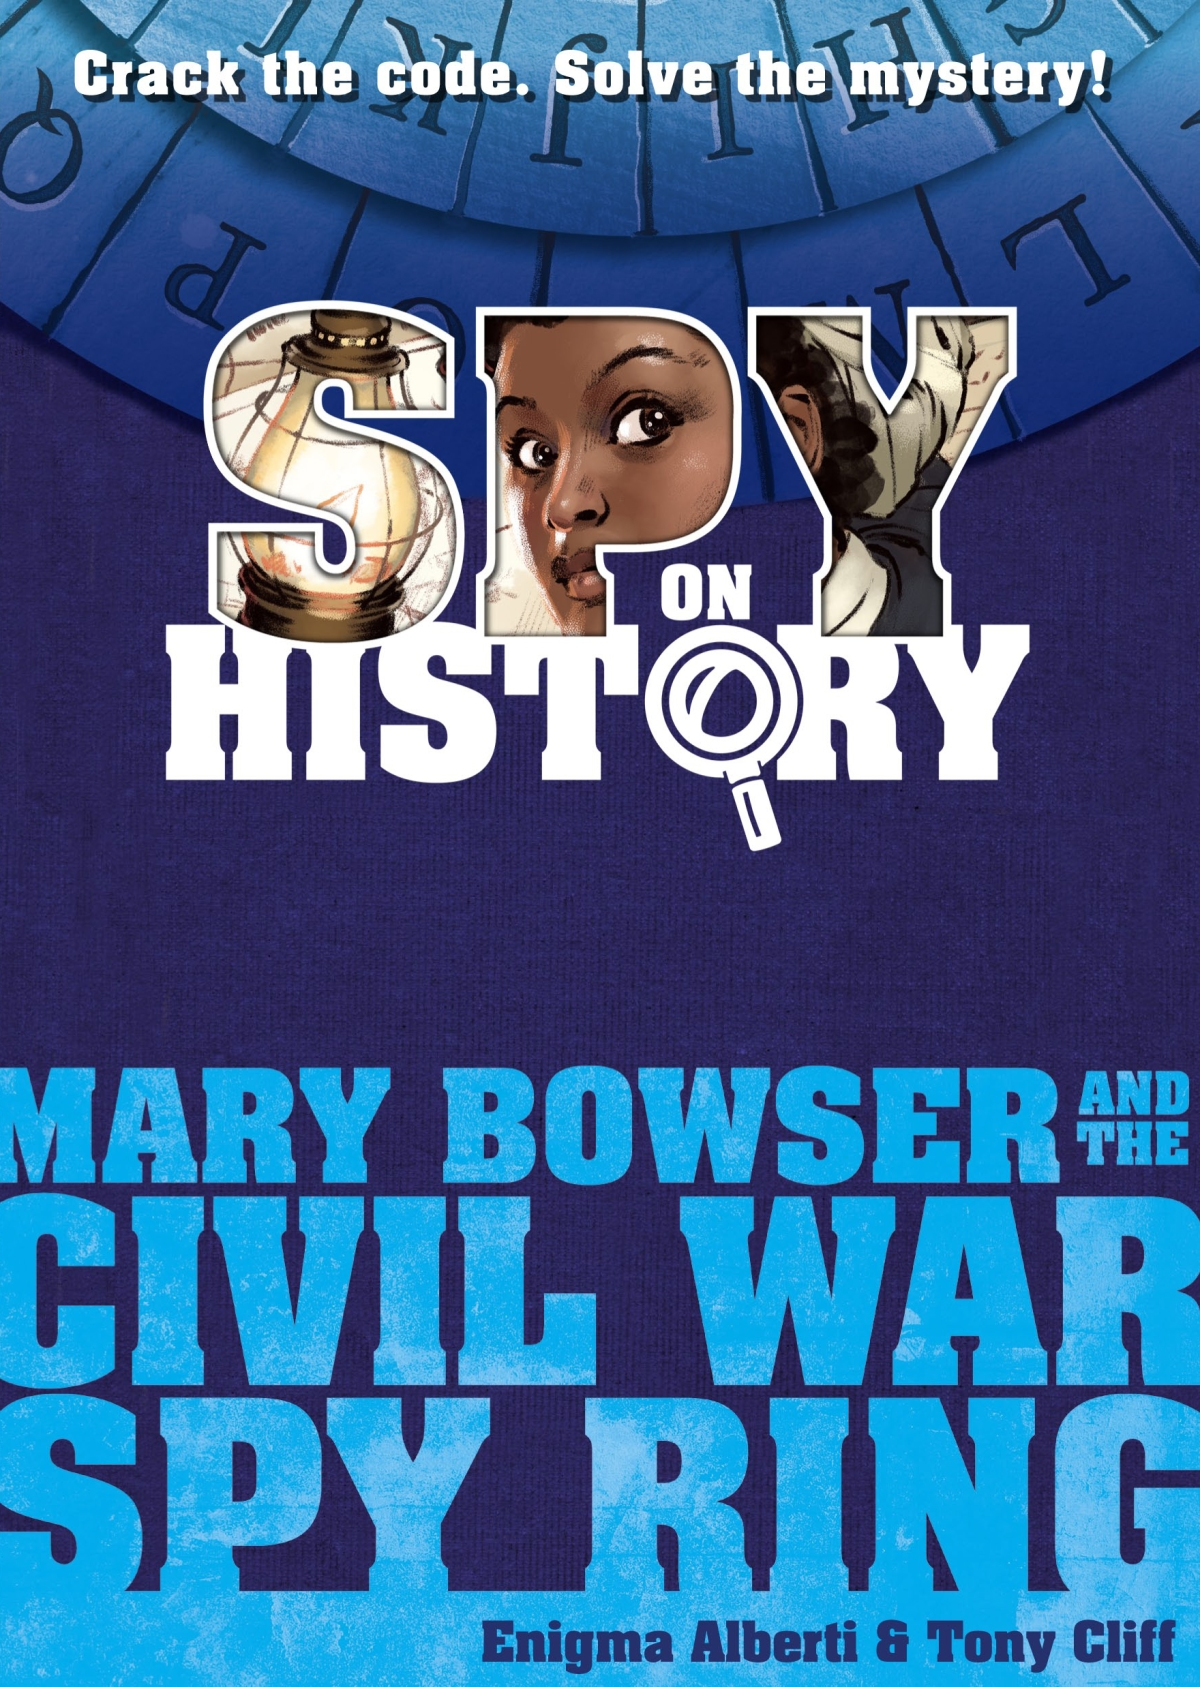 mary bowser cover image